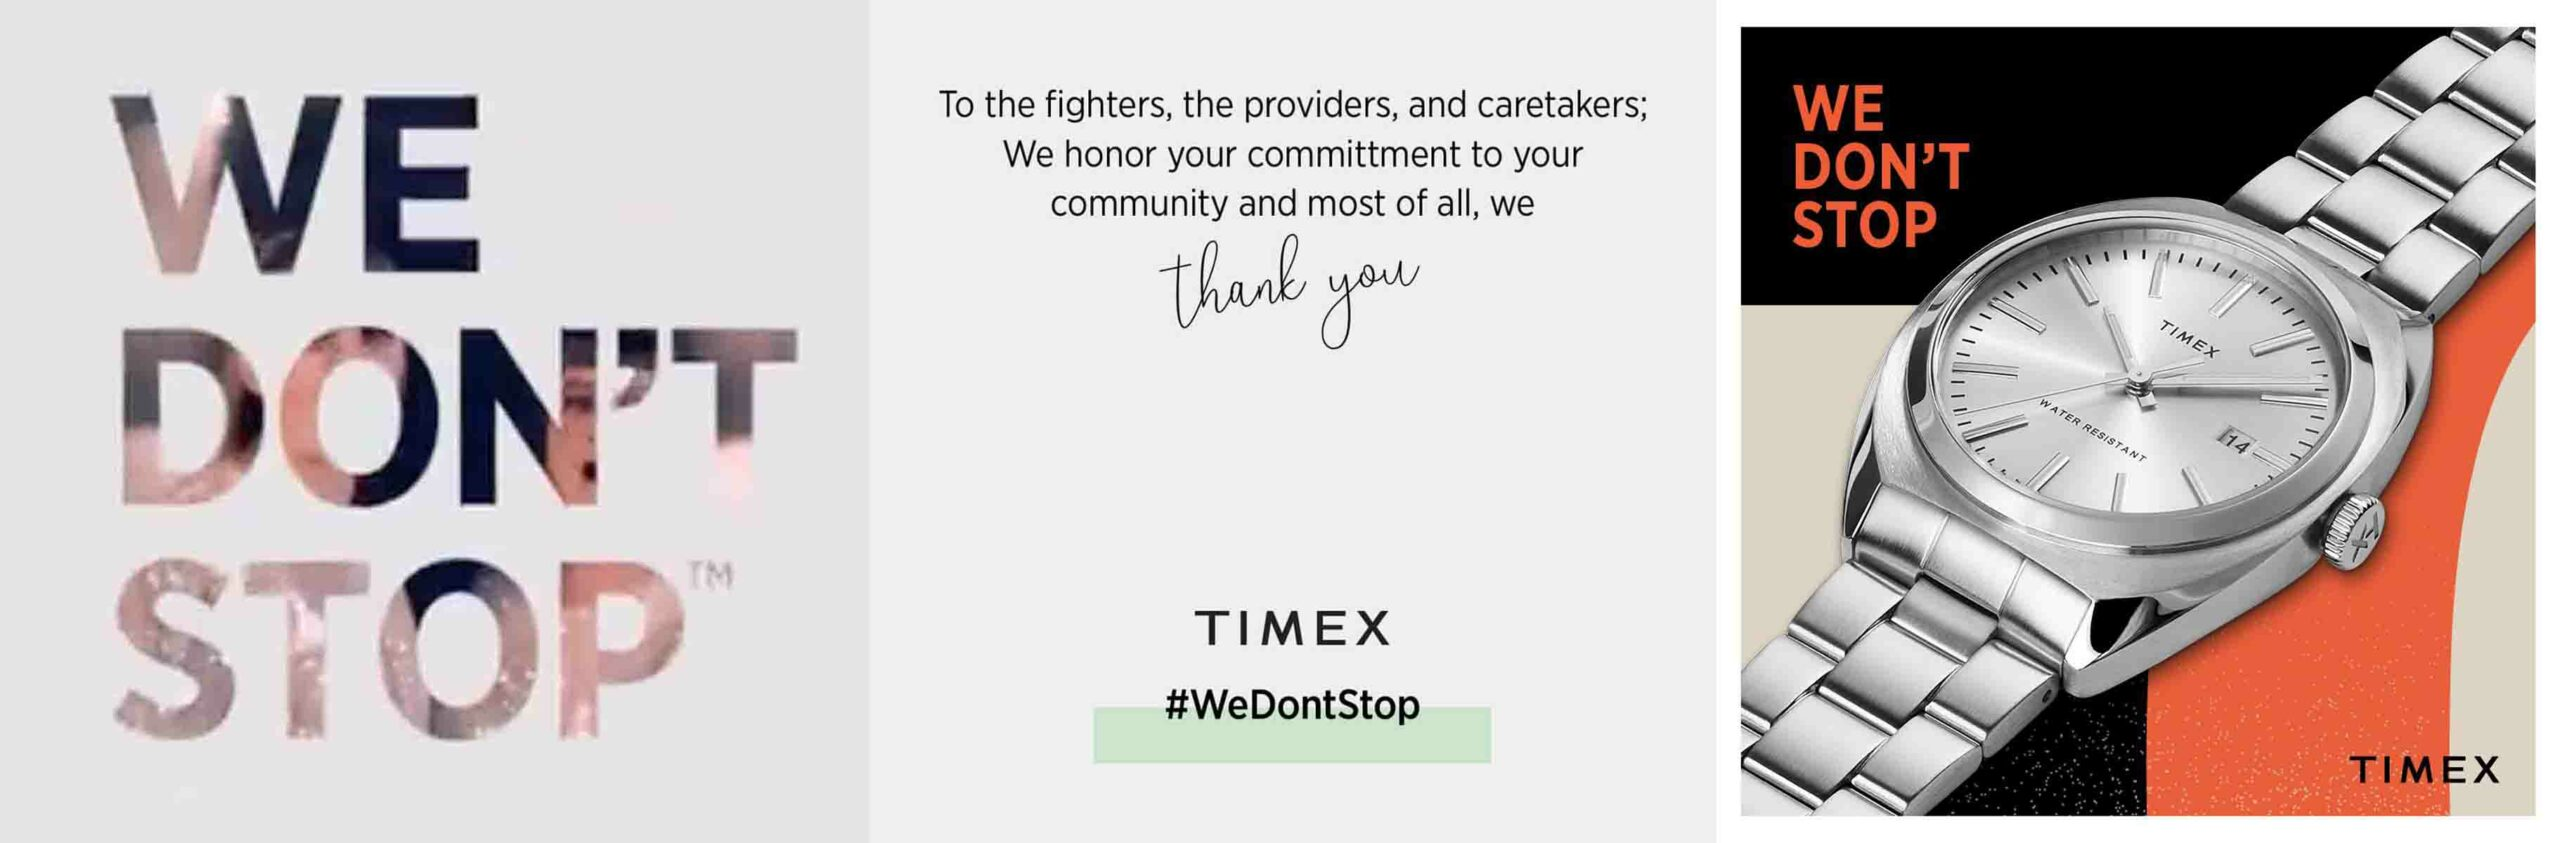 Timex We Dont Stop 2